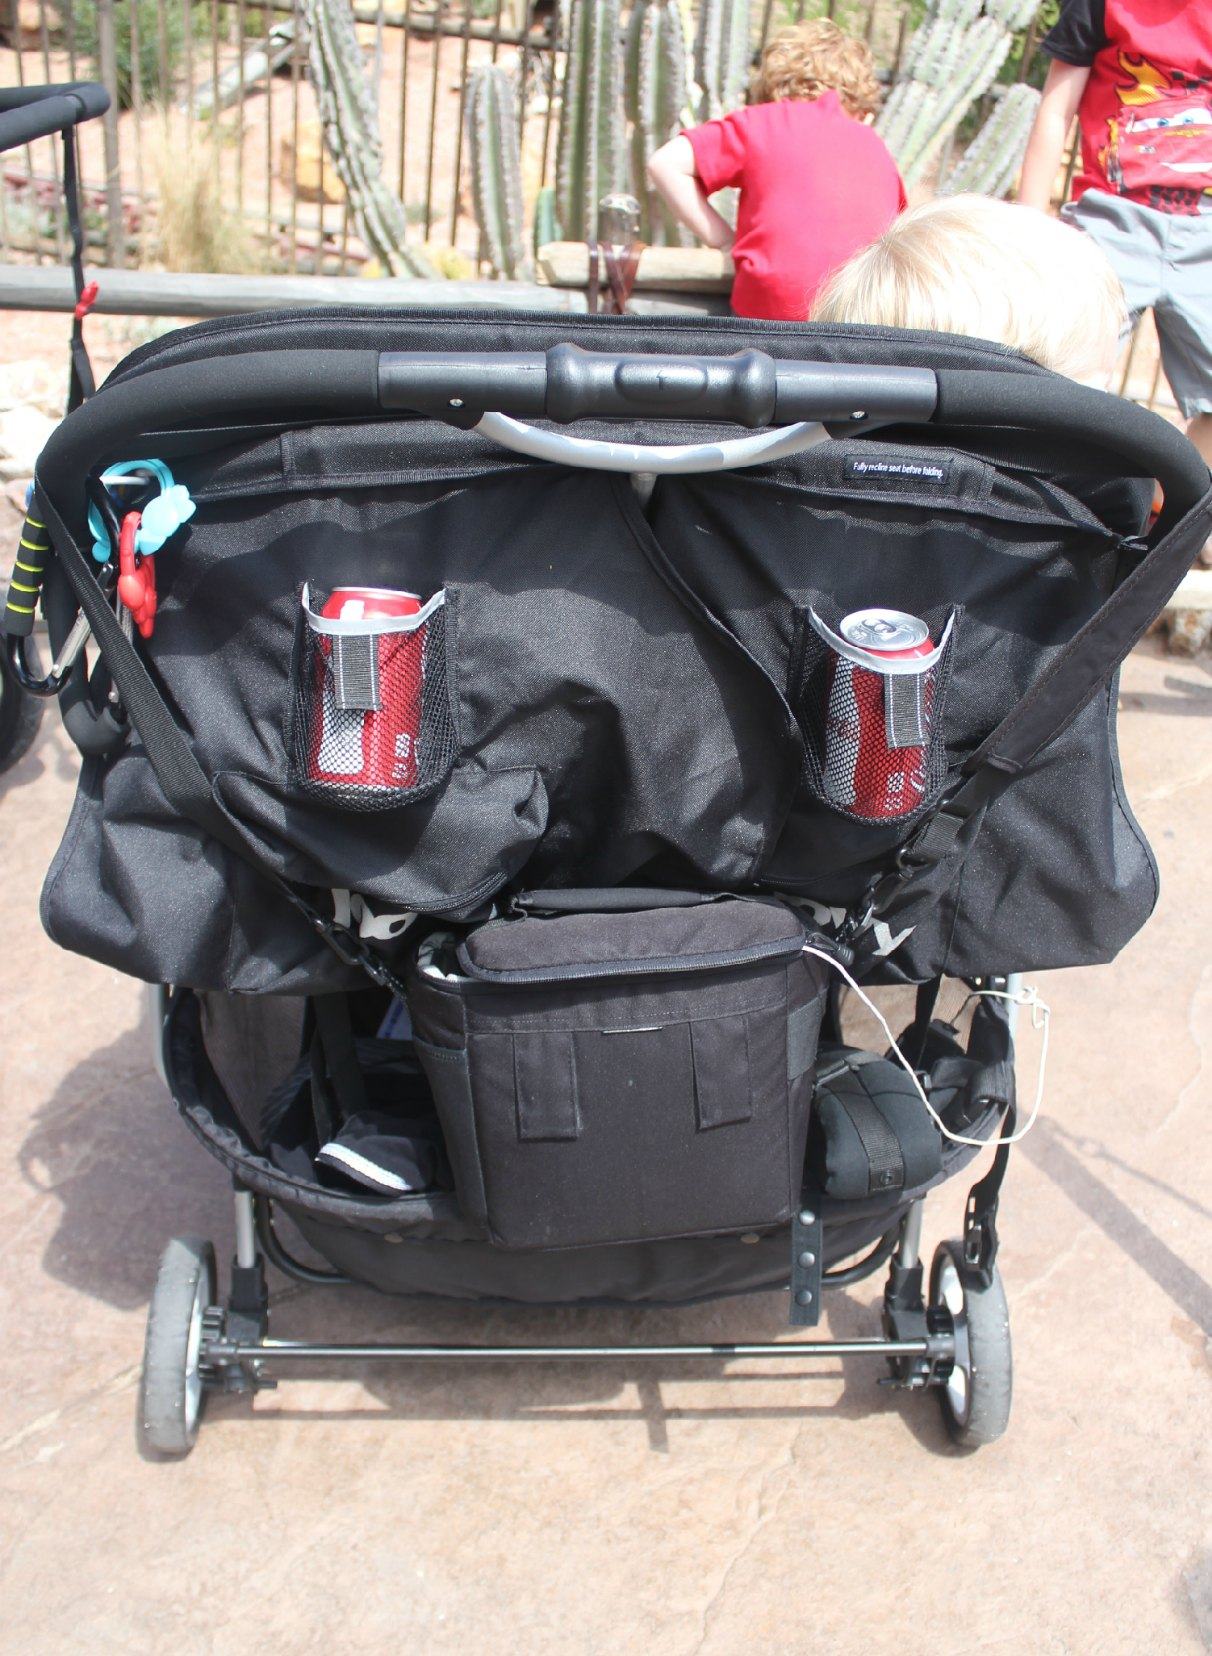 Double Stroller at Disney